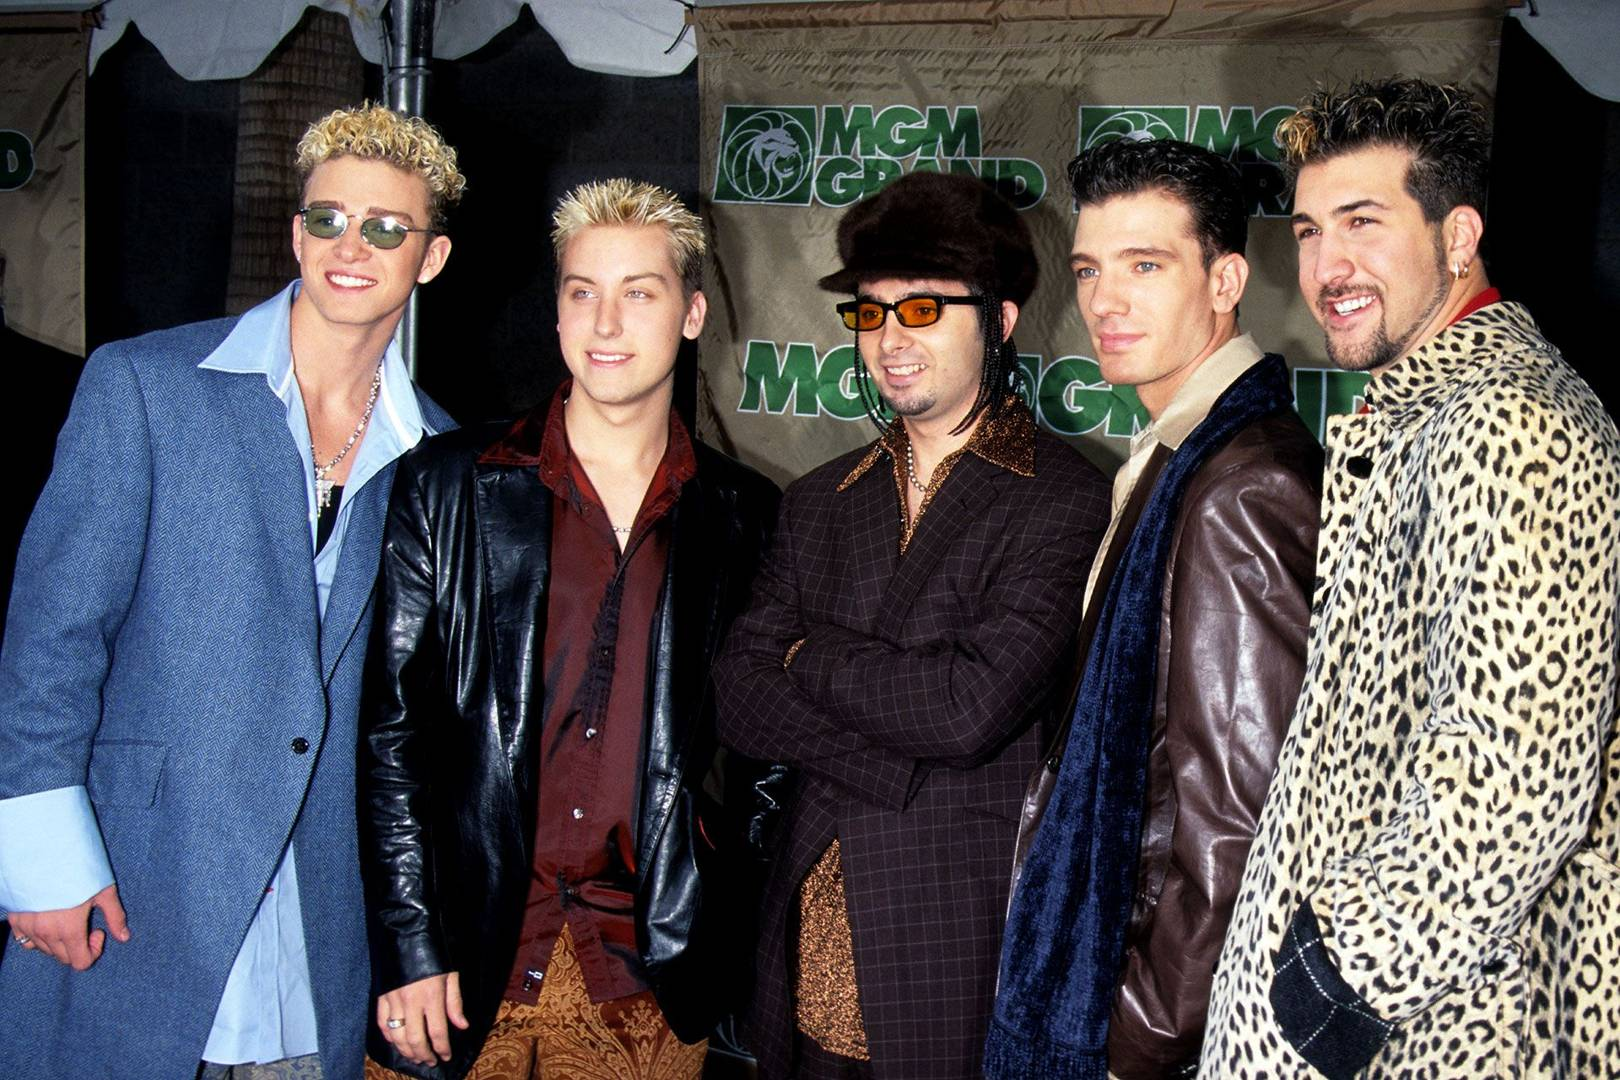 Boy bands: Where Are They Now? including A1, Backstreet Boys, Blue ...